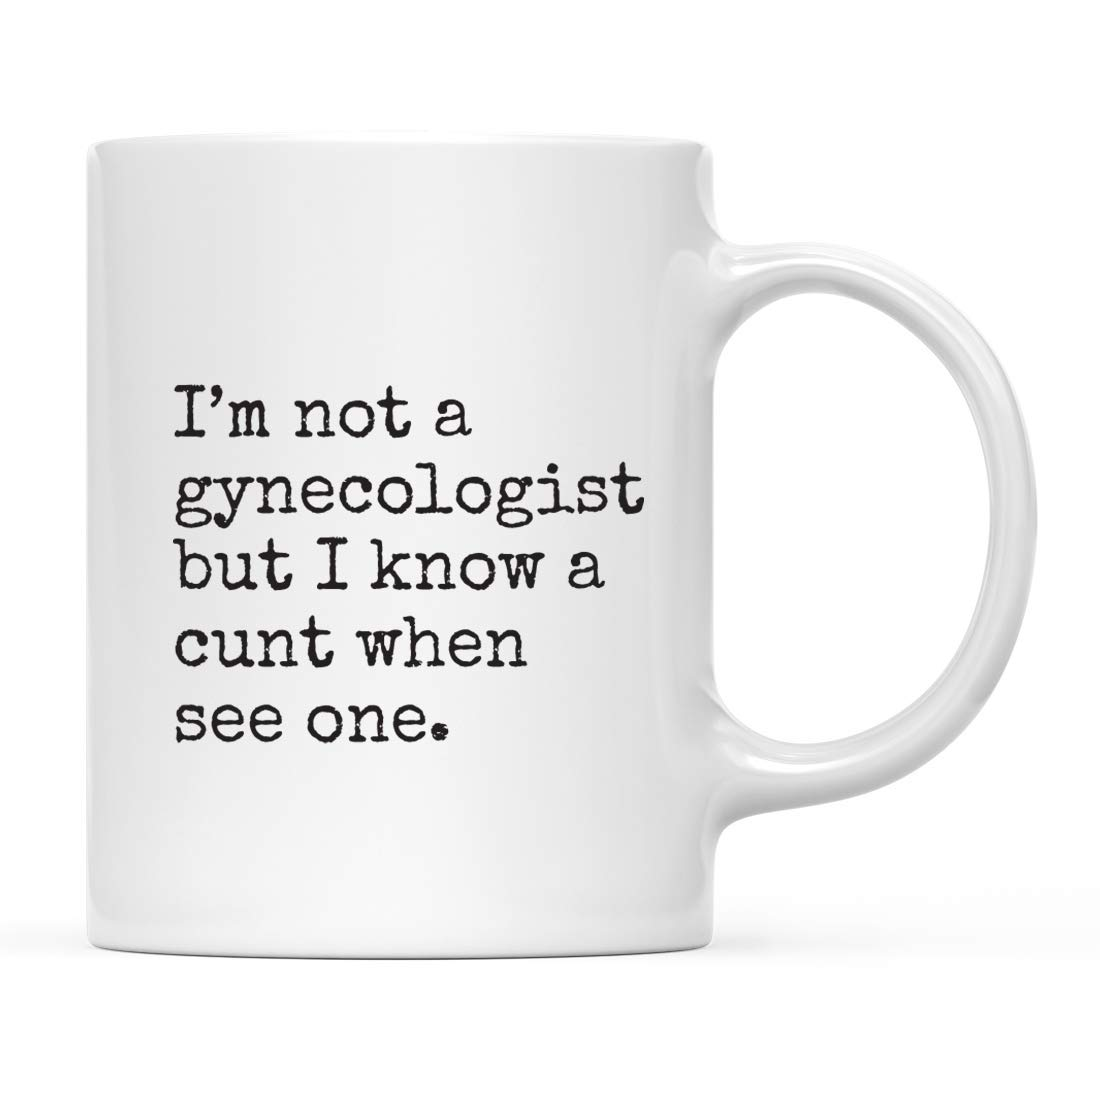 Andaz Press 11oz. Funny Rude Coffee Mug Gift, Typewriter Style, I'm Not a Gynecologist But I Know a Cunt When I See One, 1-Pack